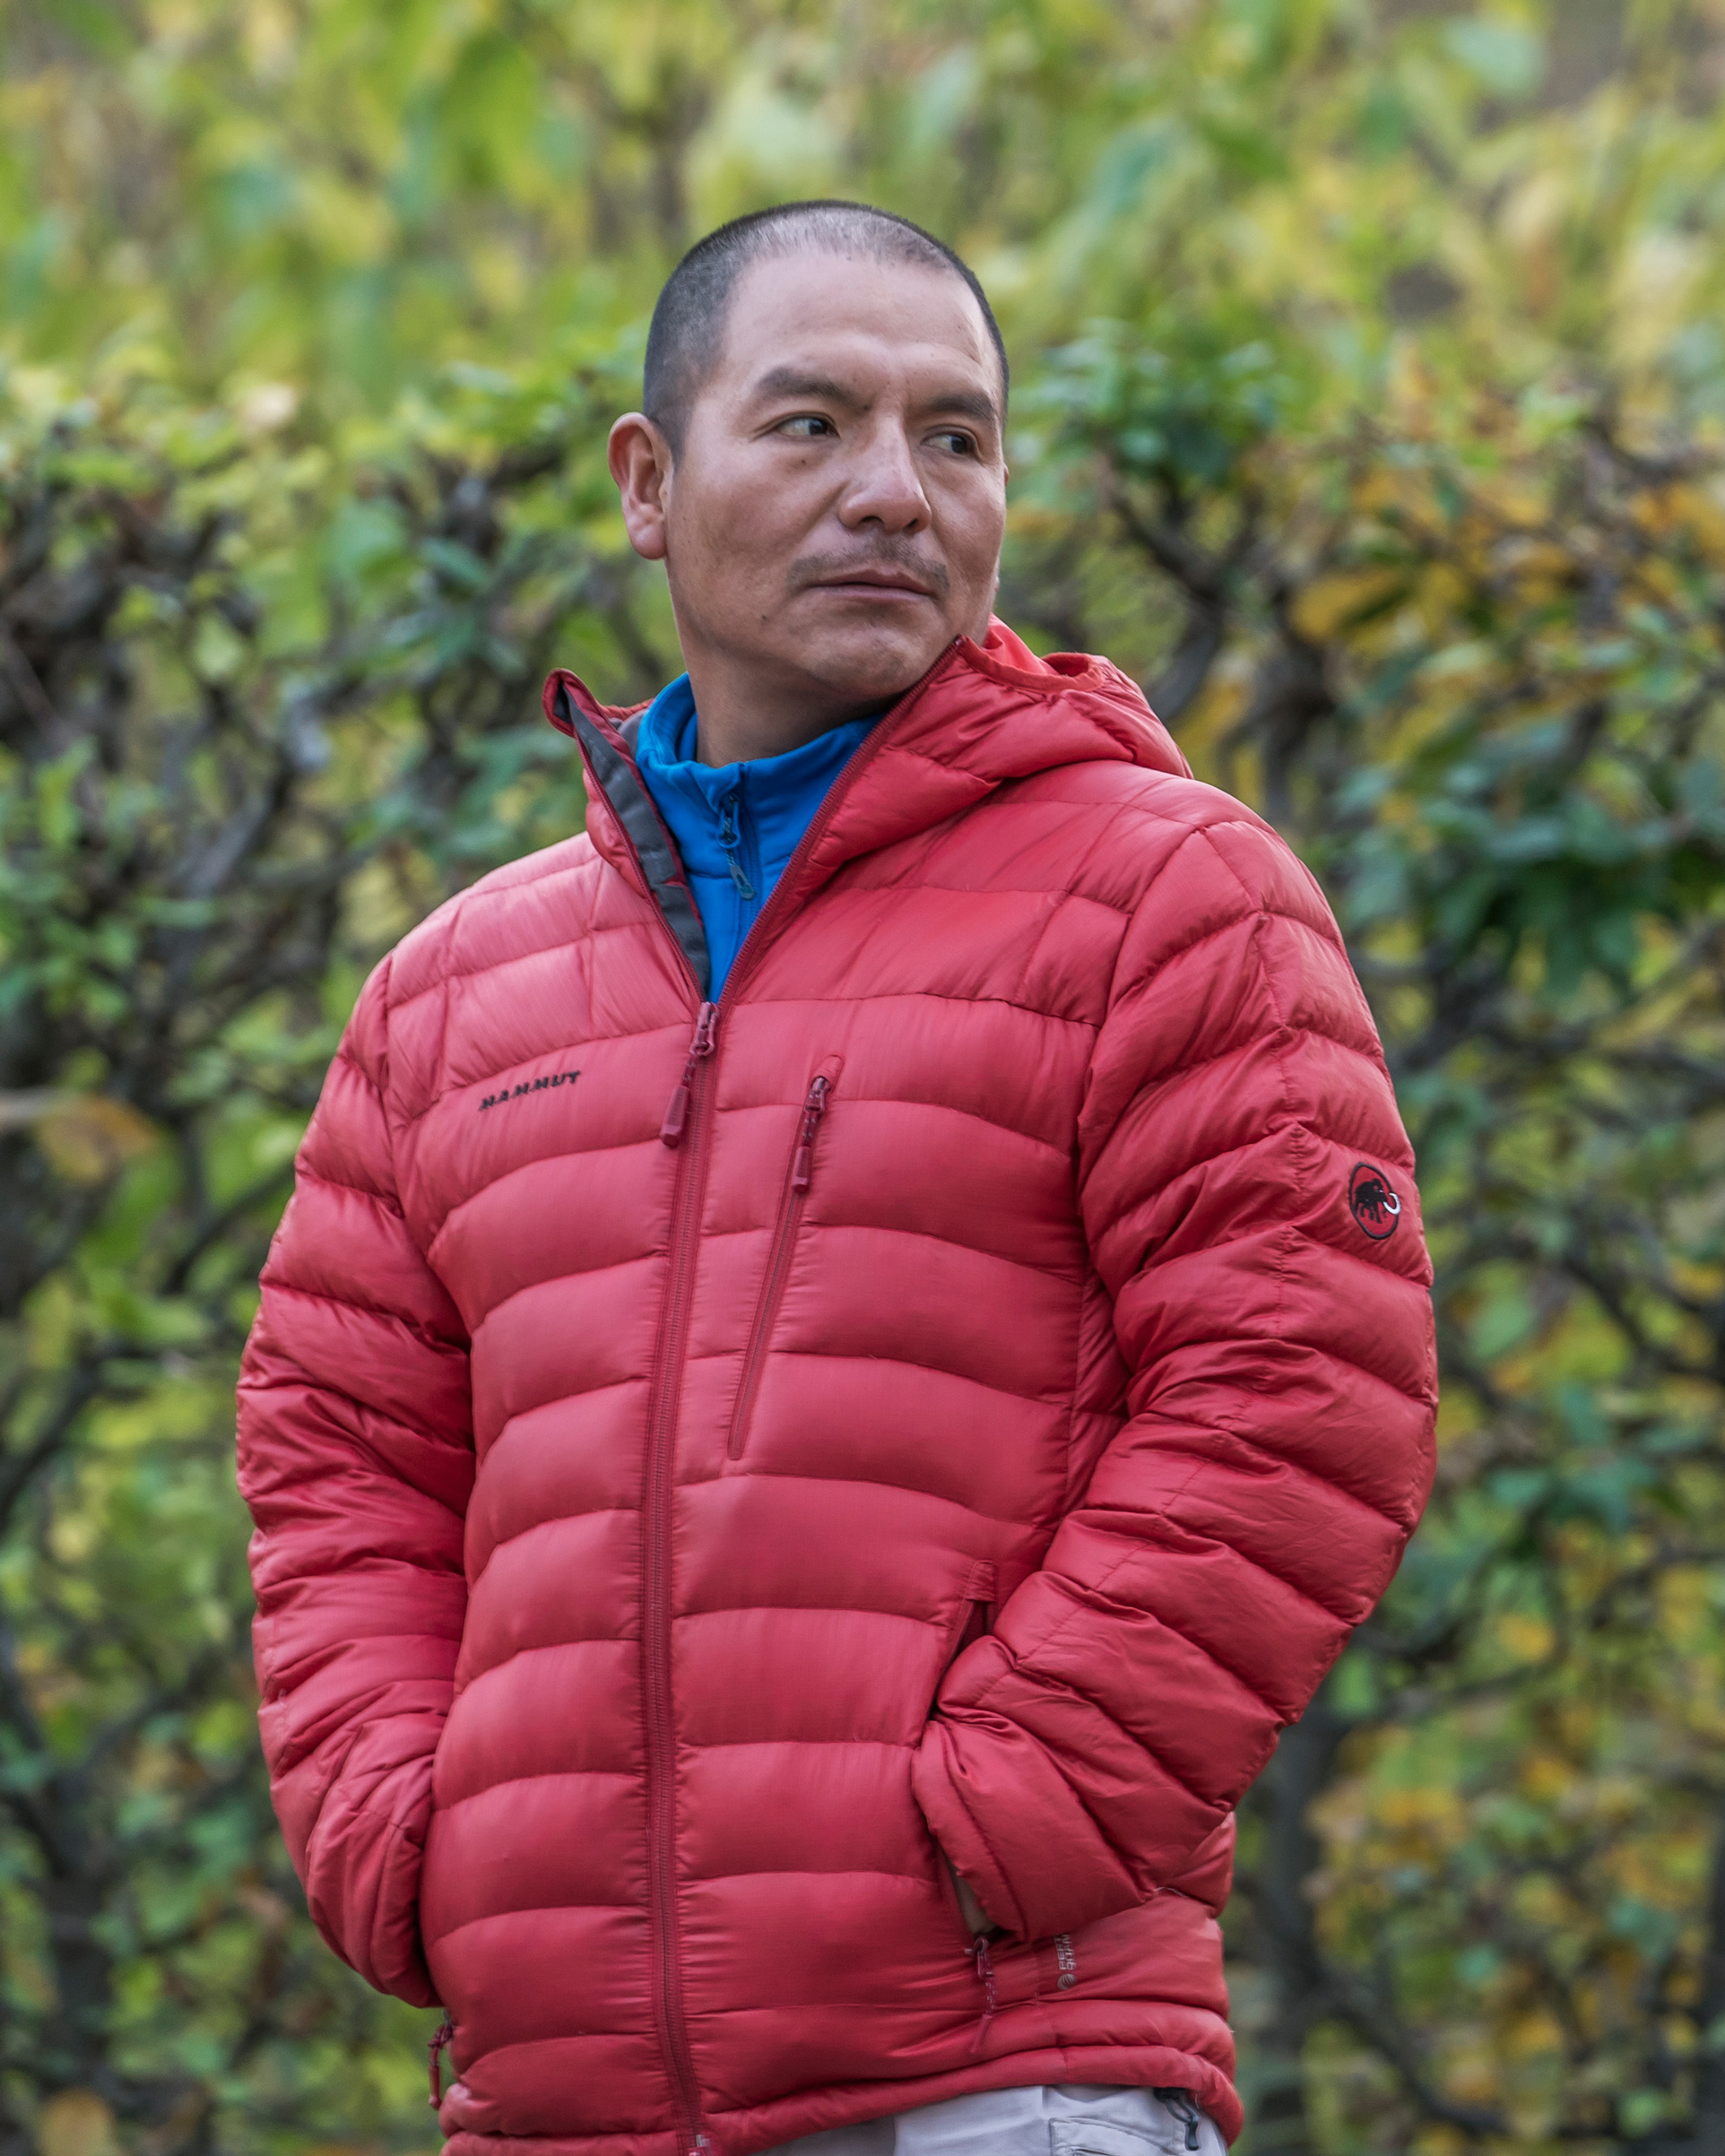 Saul Luciano Lliuya, a farmer from Peru, at the U.N. Climate Change Conference in Bonn, Germany, on Nov. 14, 2017.